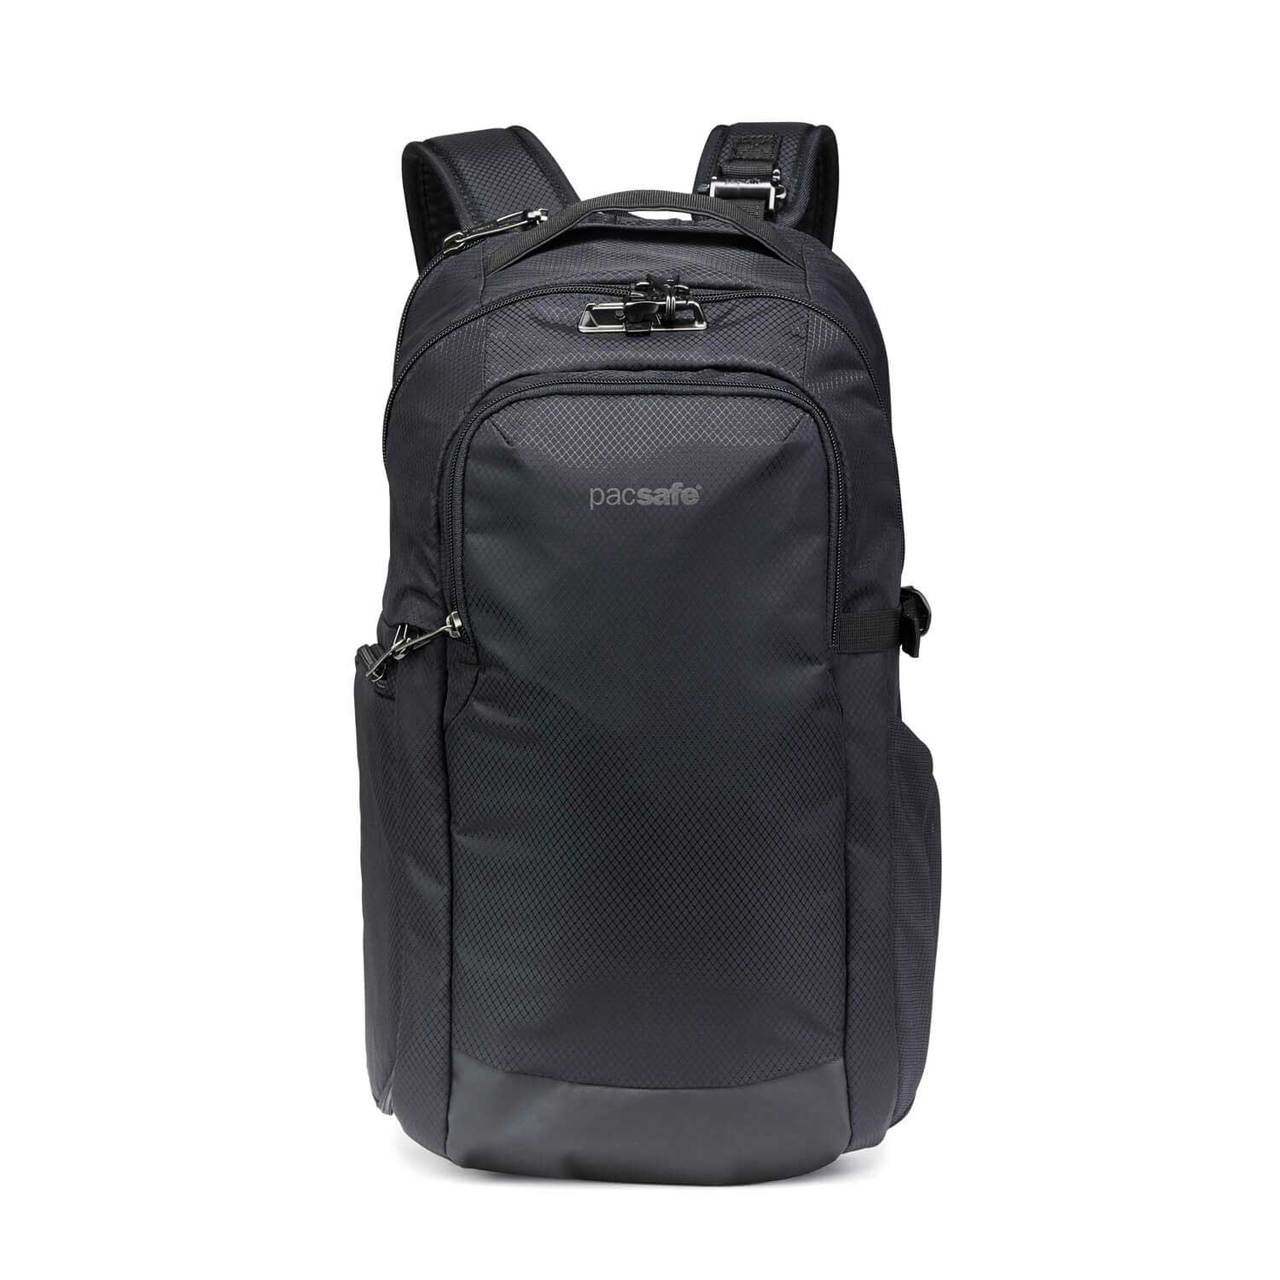 Camsafe Camera & Photography Anti Theft Secure Bags at